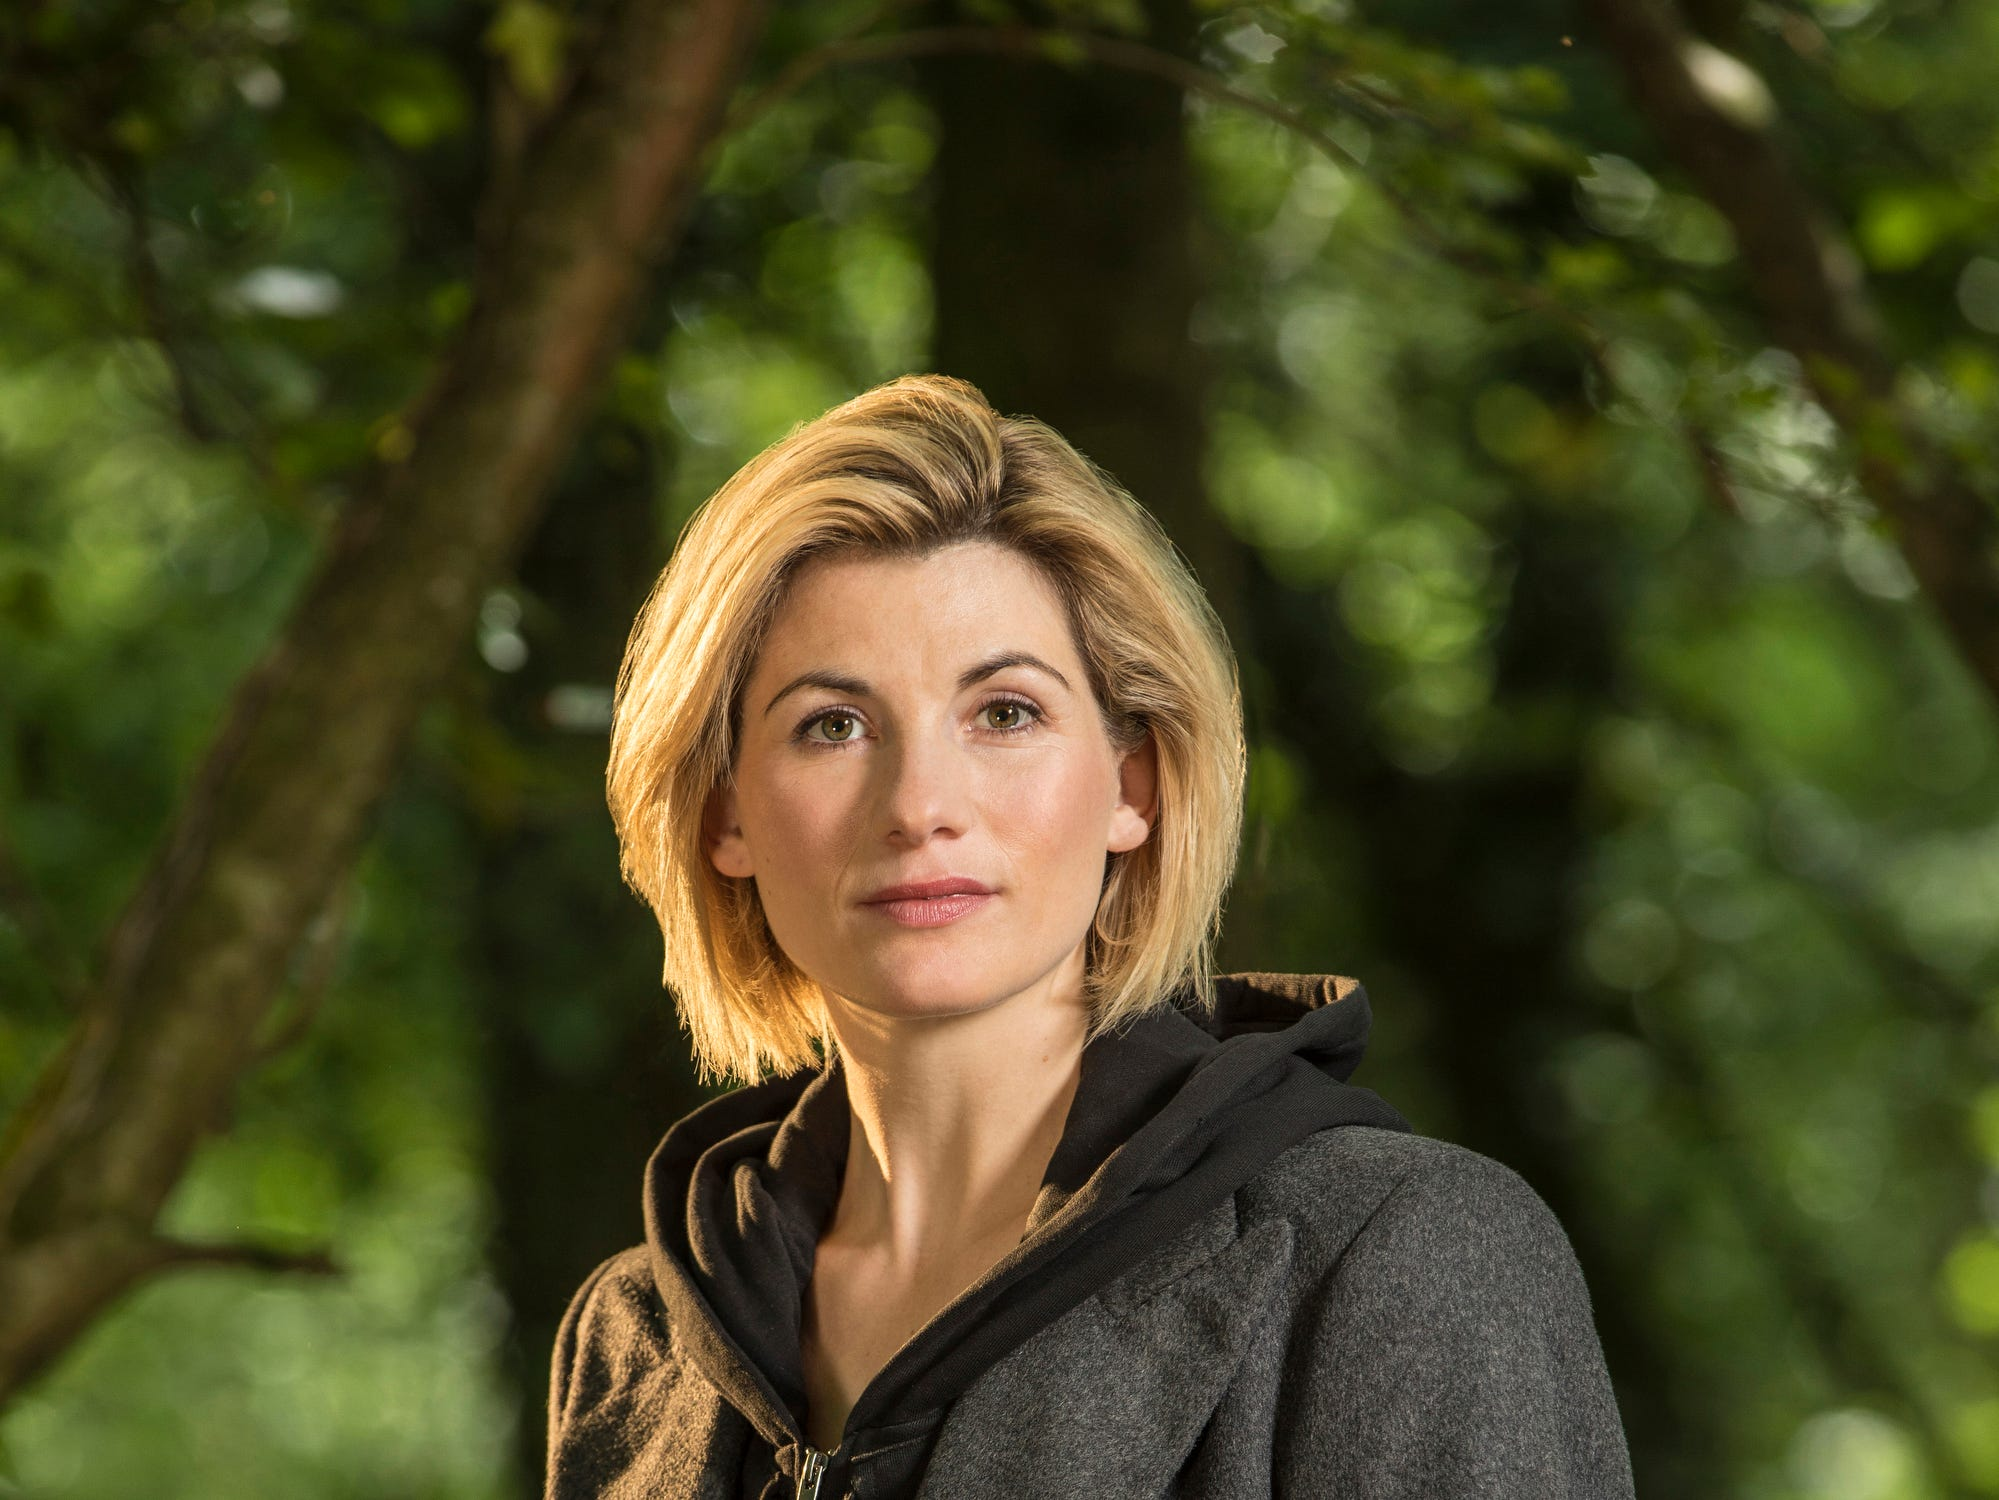 Jodie Whittaker is taking over the iconic role as the first female Doctor in the extensive history of the show. She will be joined by new executive producer Chris Chibnall.